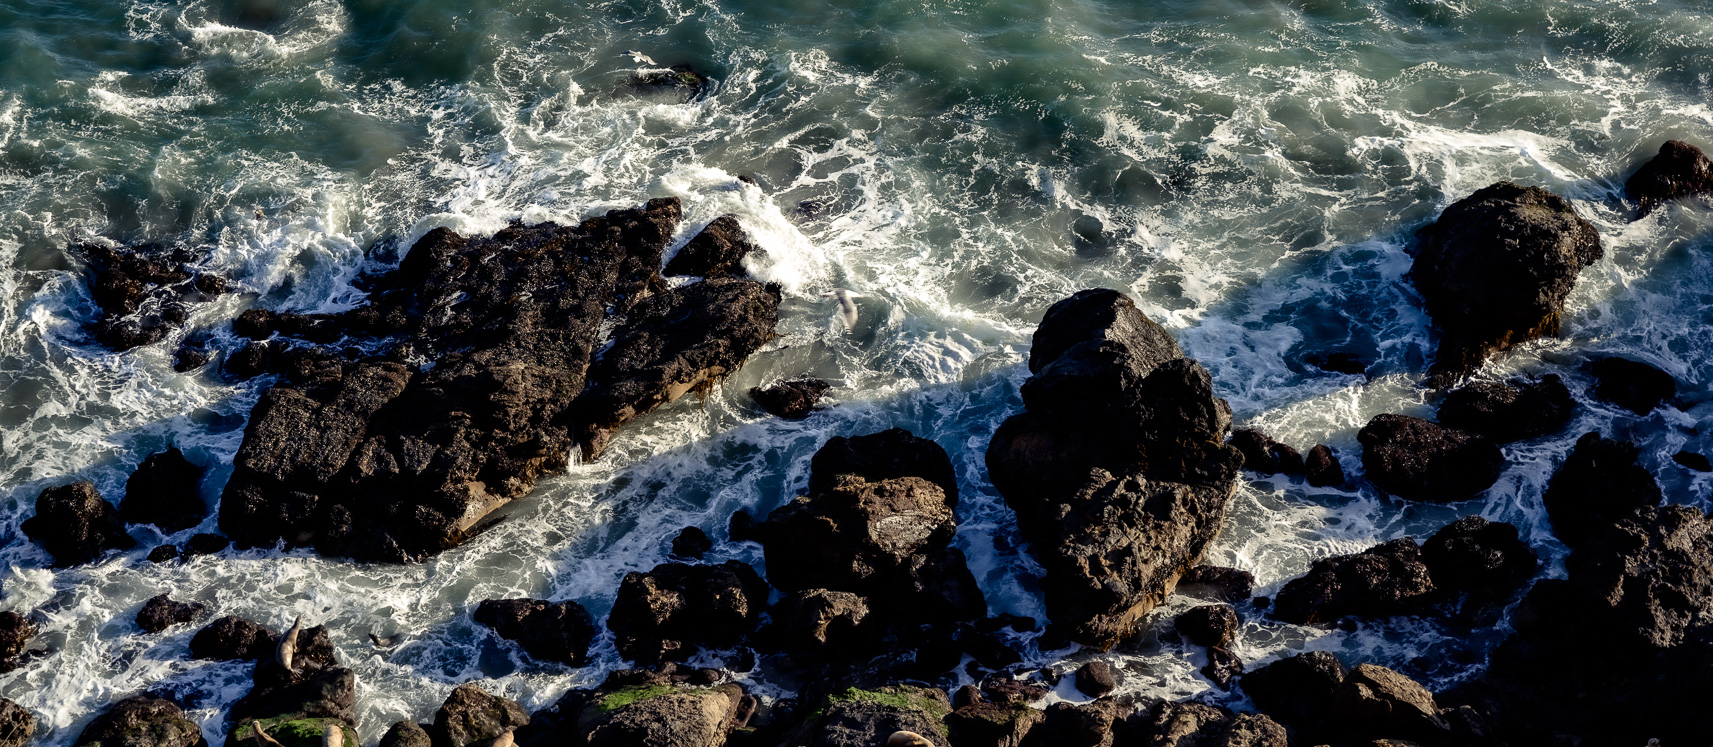 Top down view of an aerial photo looking at the waves crashing into the rocks on the coast of California.